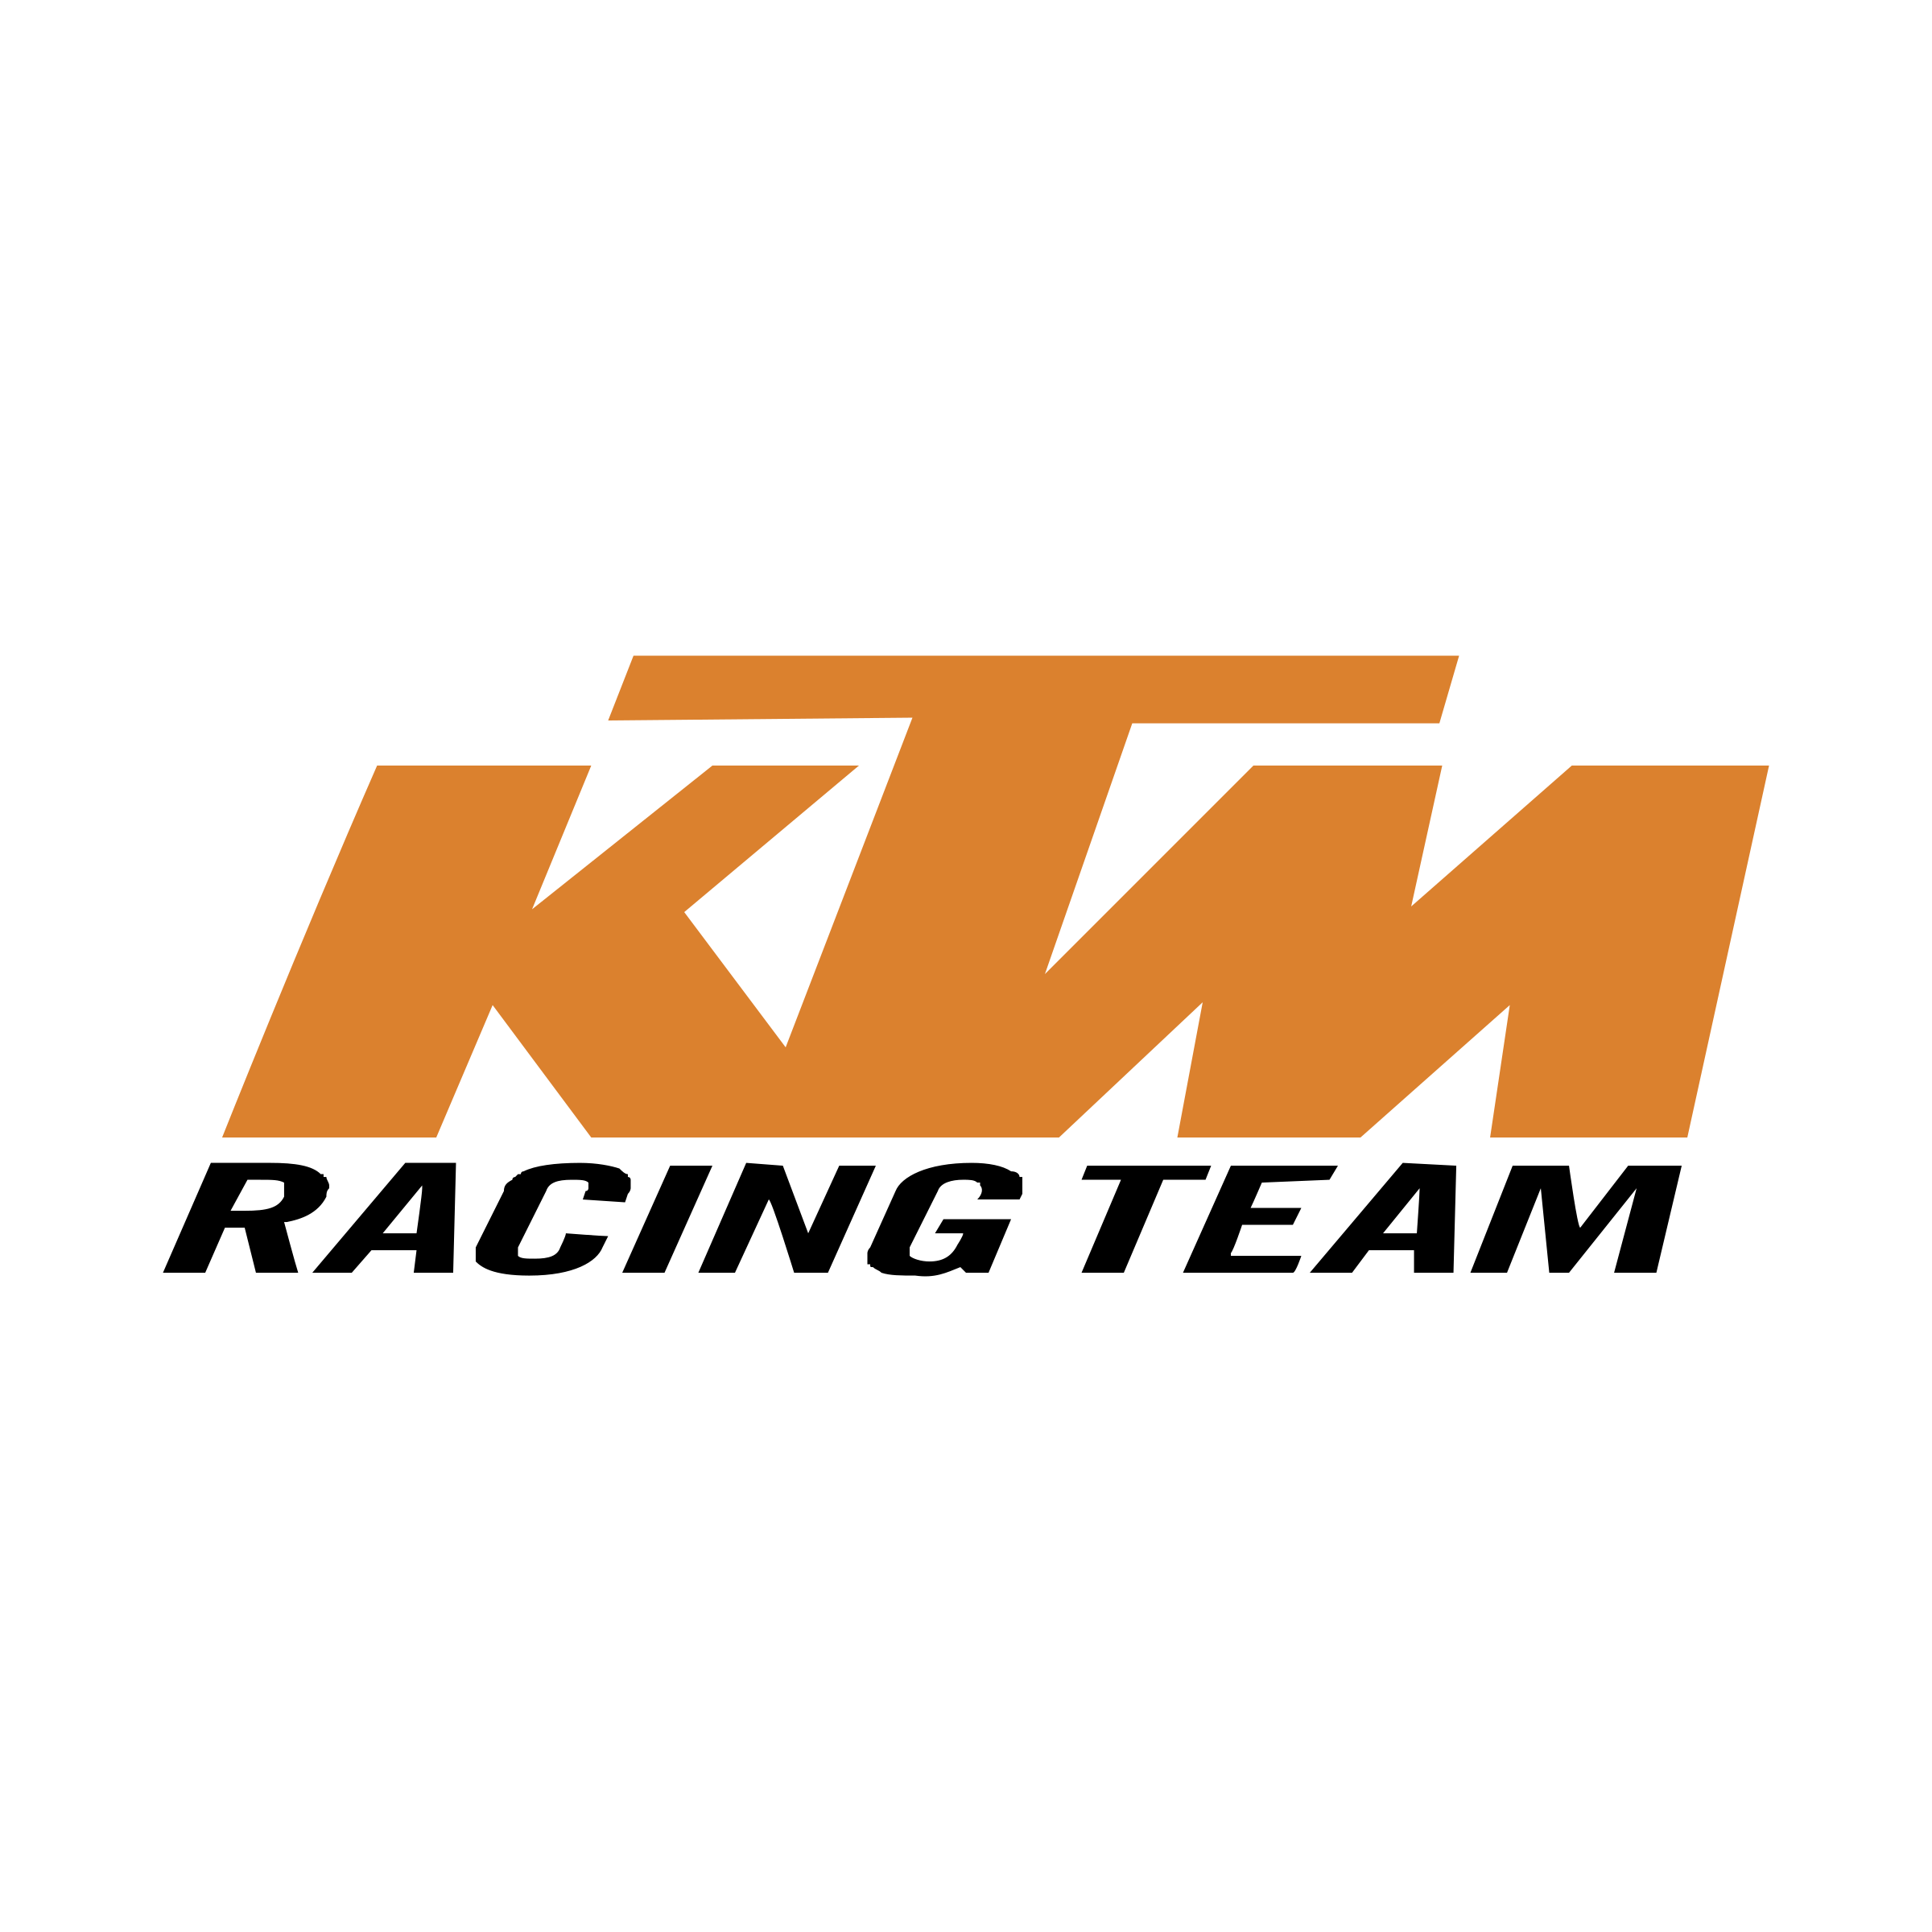 KTM Racing Team Logo PNG Transparent & SVG Vector.